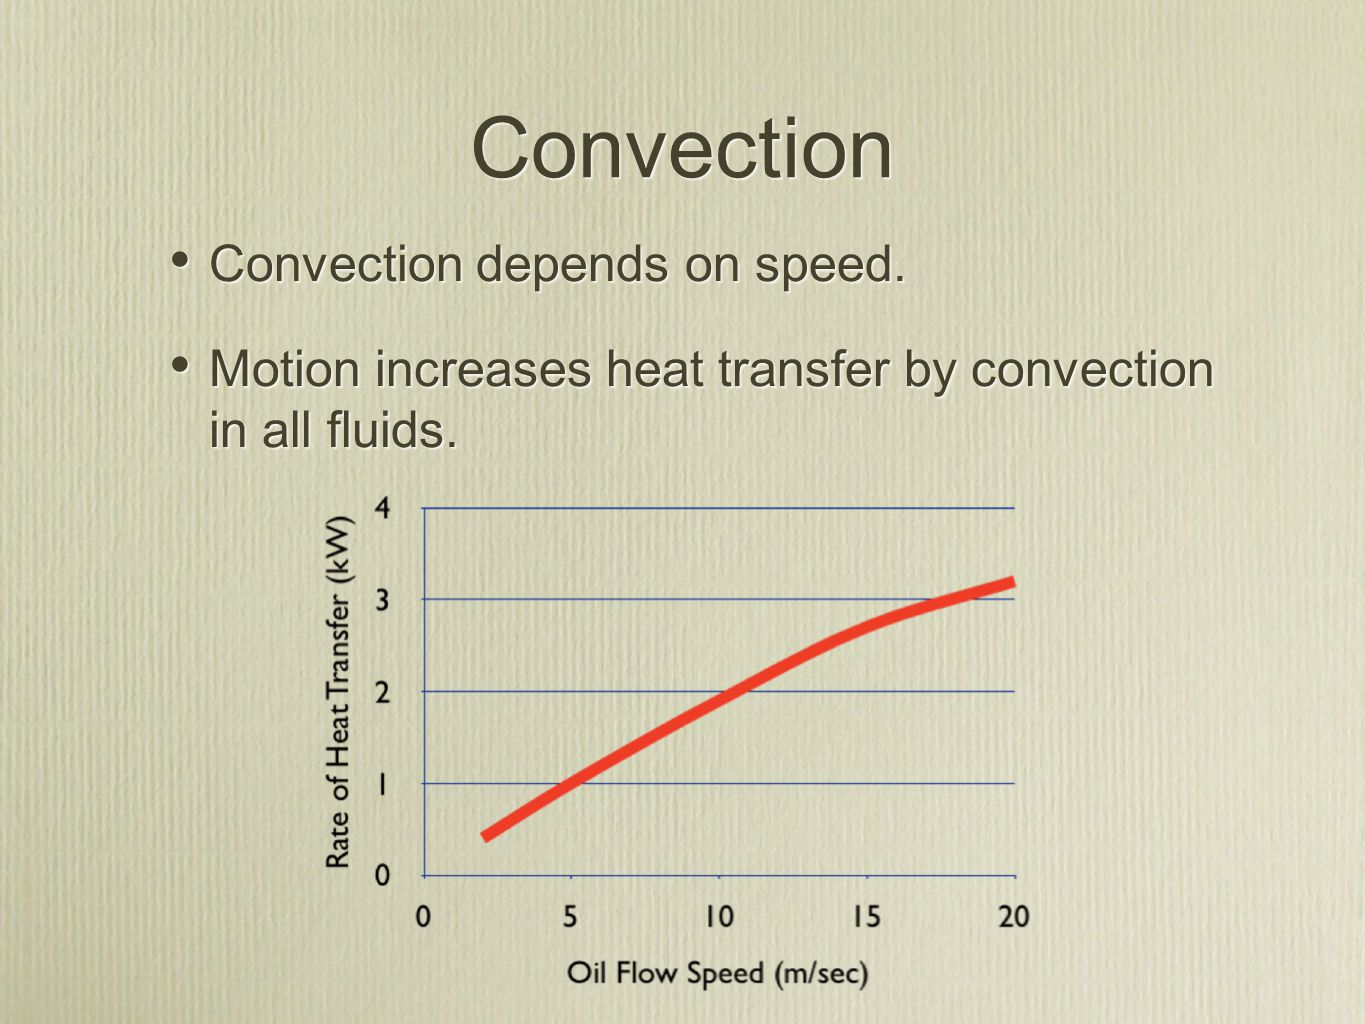 Convection Convection depends on speed. Motion increases heat transfer by convection in all fluids. Convection depends on speed. Motion increases heat